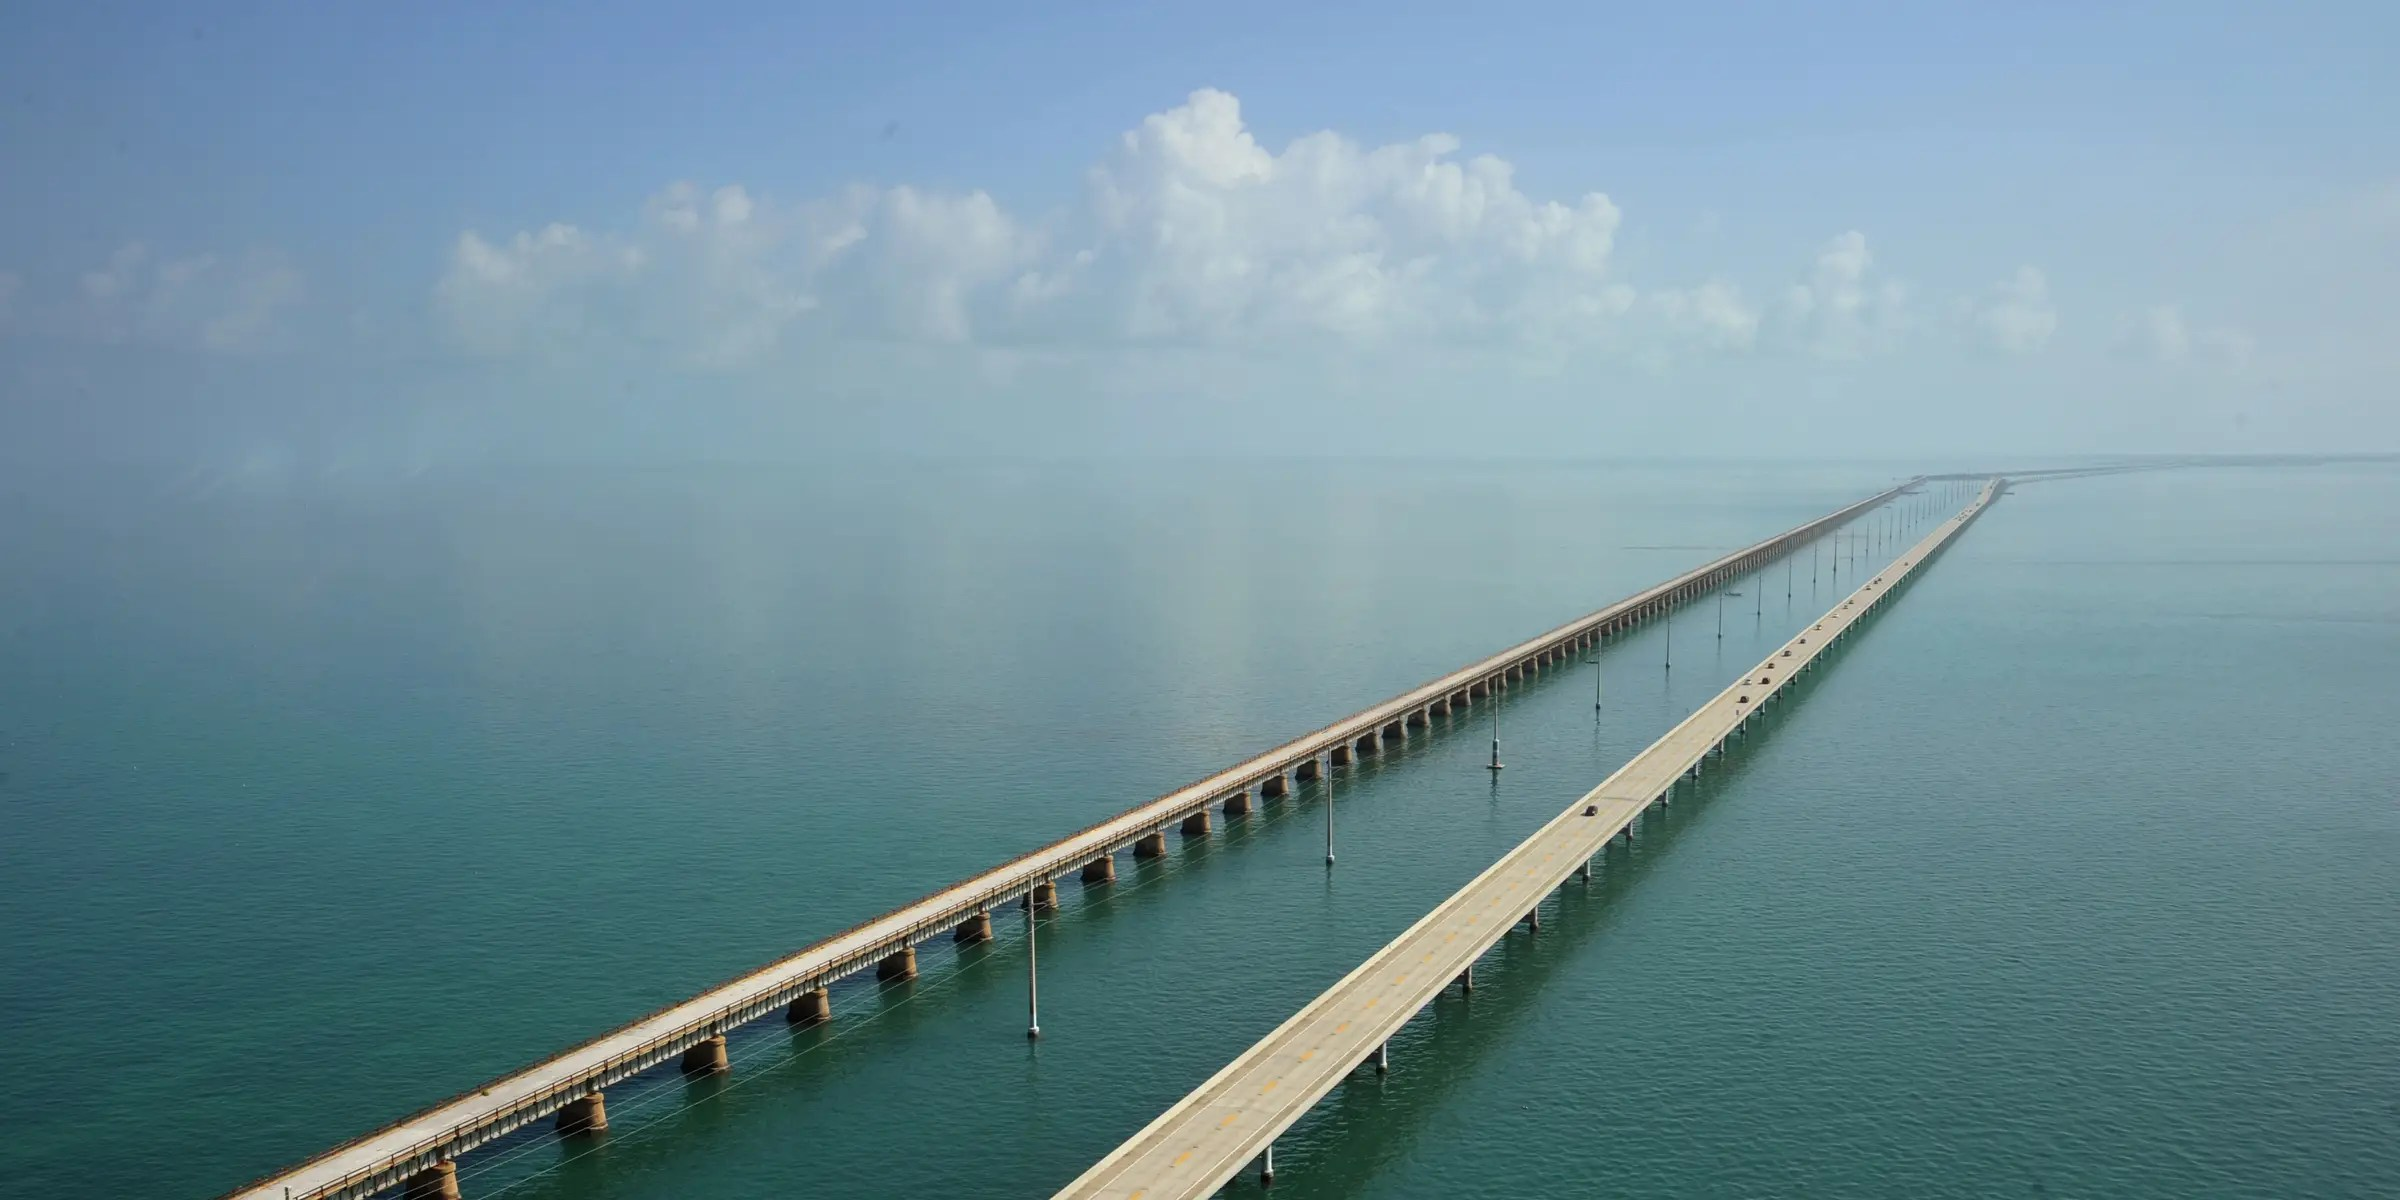 The Overseas Highway in Florida connects mainland Florida to the Florida Keys and consists of 42 overseas bridges across 113 miles. You'll feel like you're driving on the surface of the ocean. Try to catch a sunrise or a sunset, as the sun casts a beautiful reflection on the water.